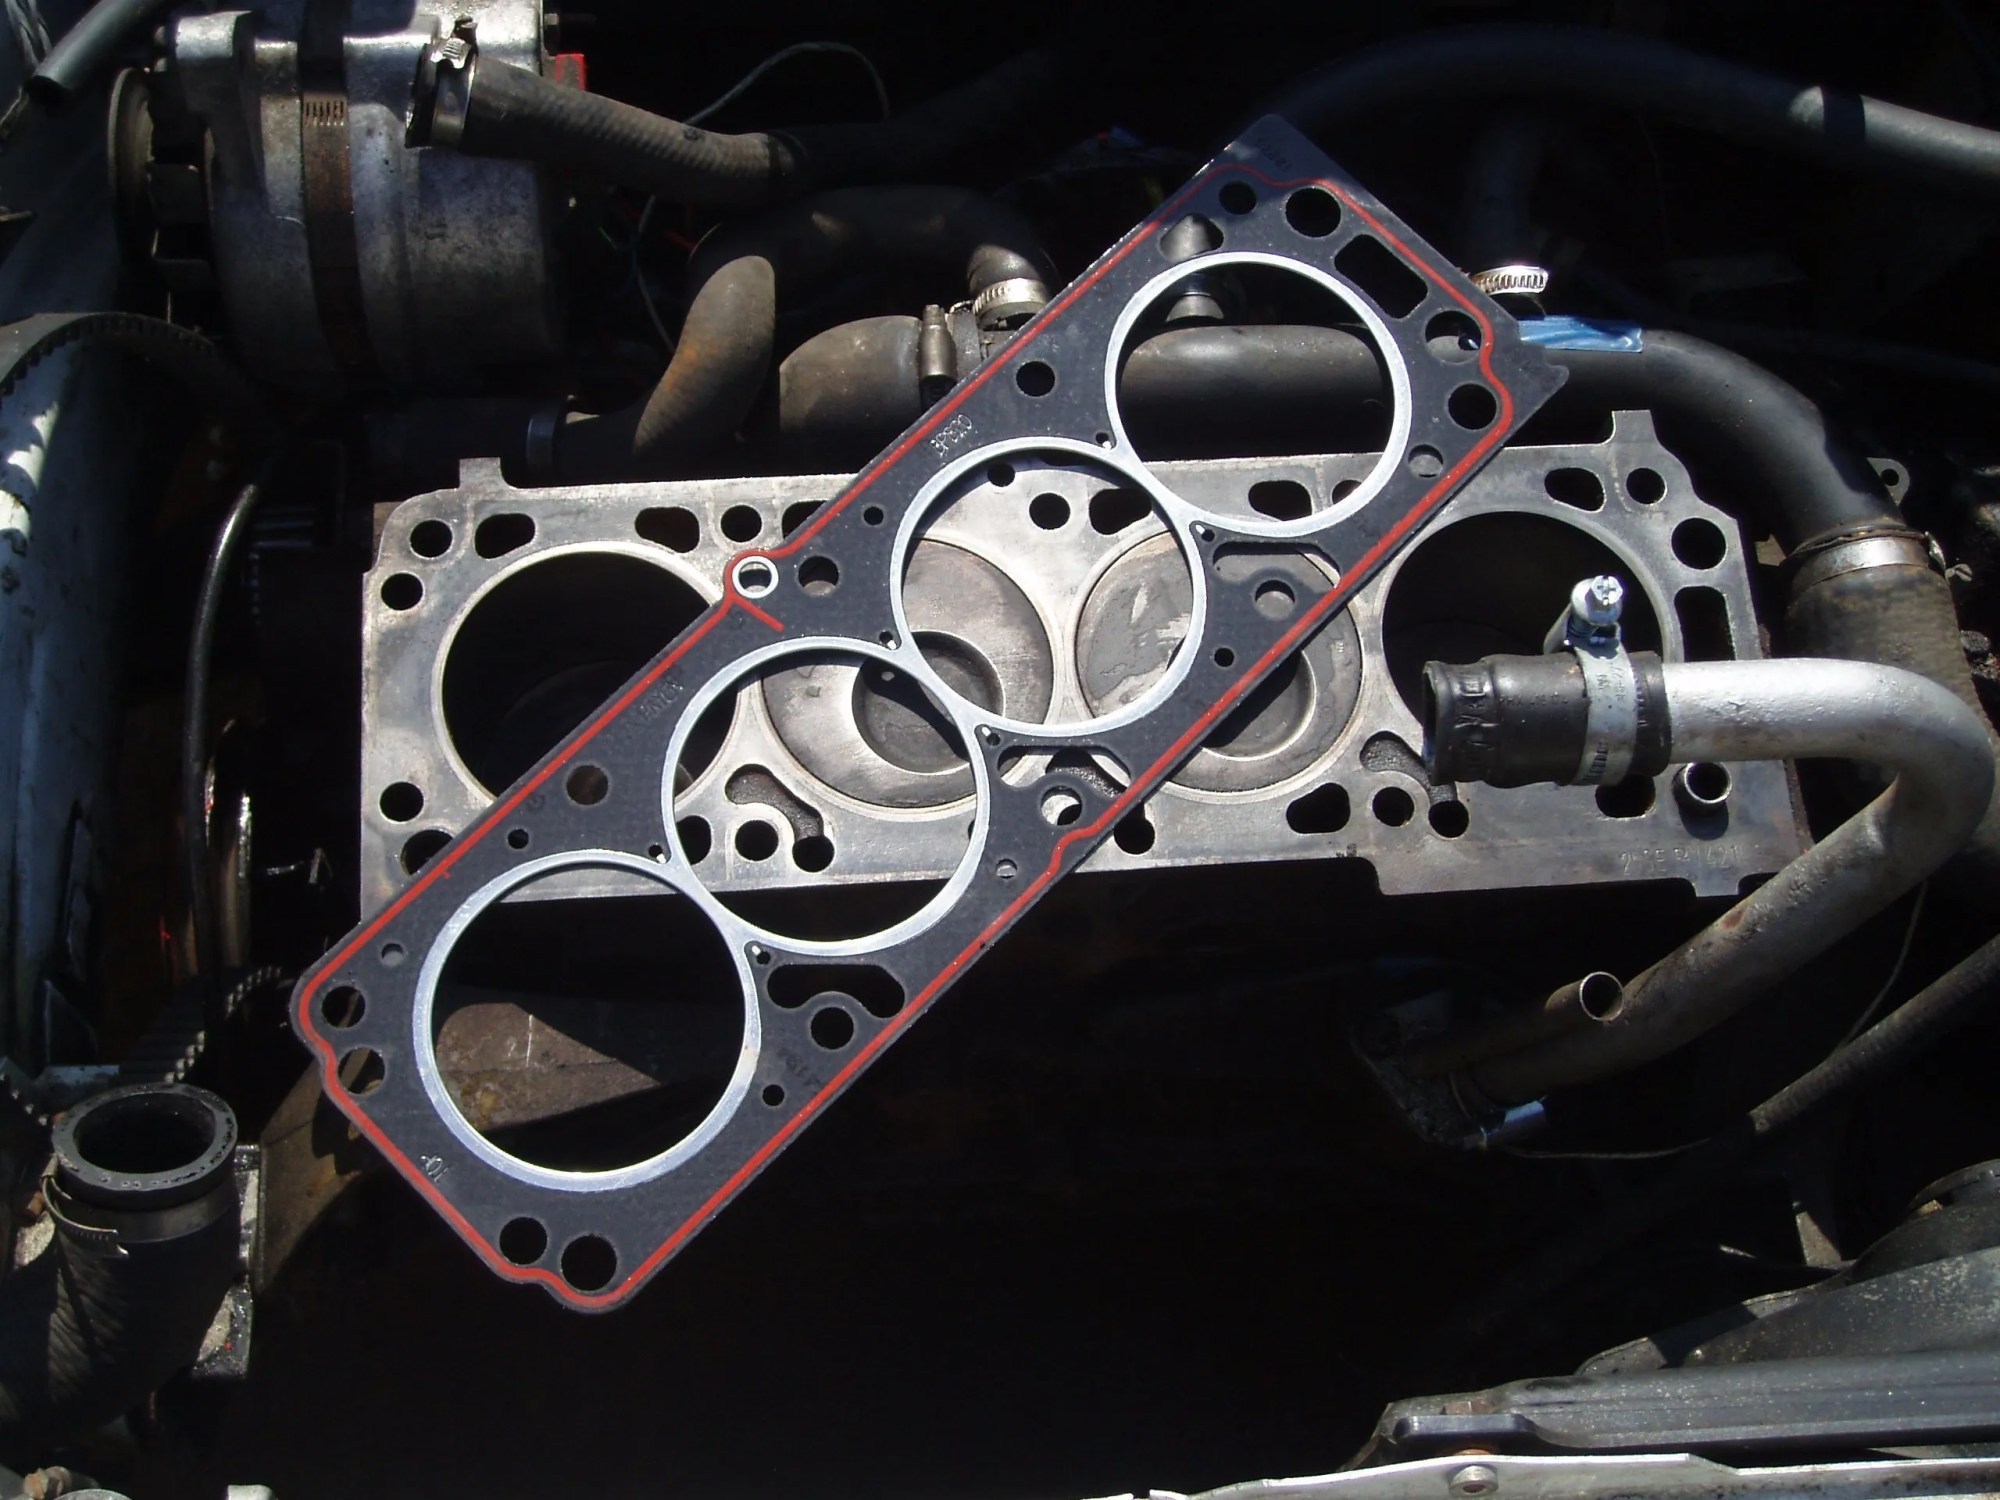 hight resolution of the head gasket serves an important purpose by ensuring no fluids enter or leave the engine and extreme stress or just normal wear and tear can cause it to